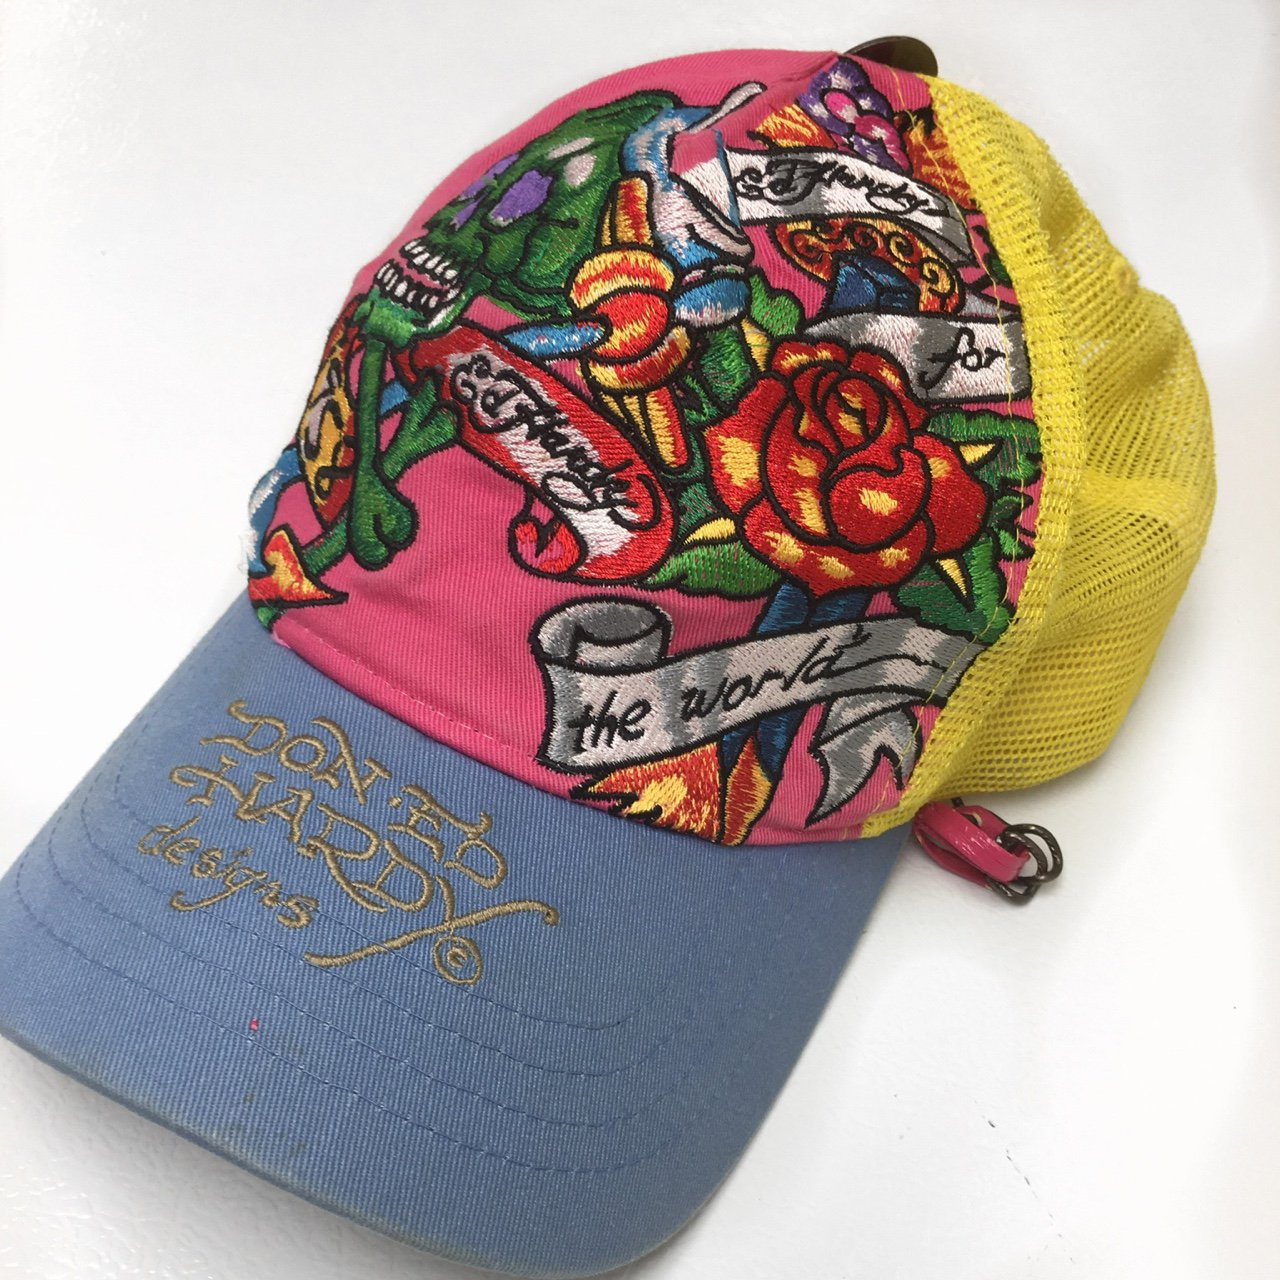 Classic Ed hardy Trucker Hat. Everything is Embroidered and - Depop bef3a354905